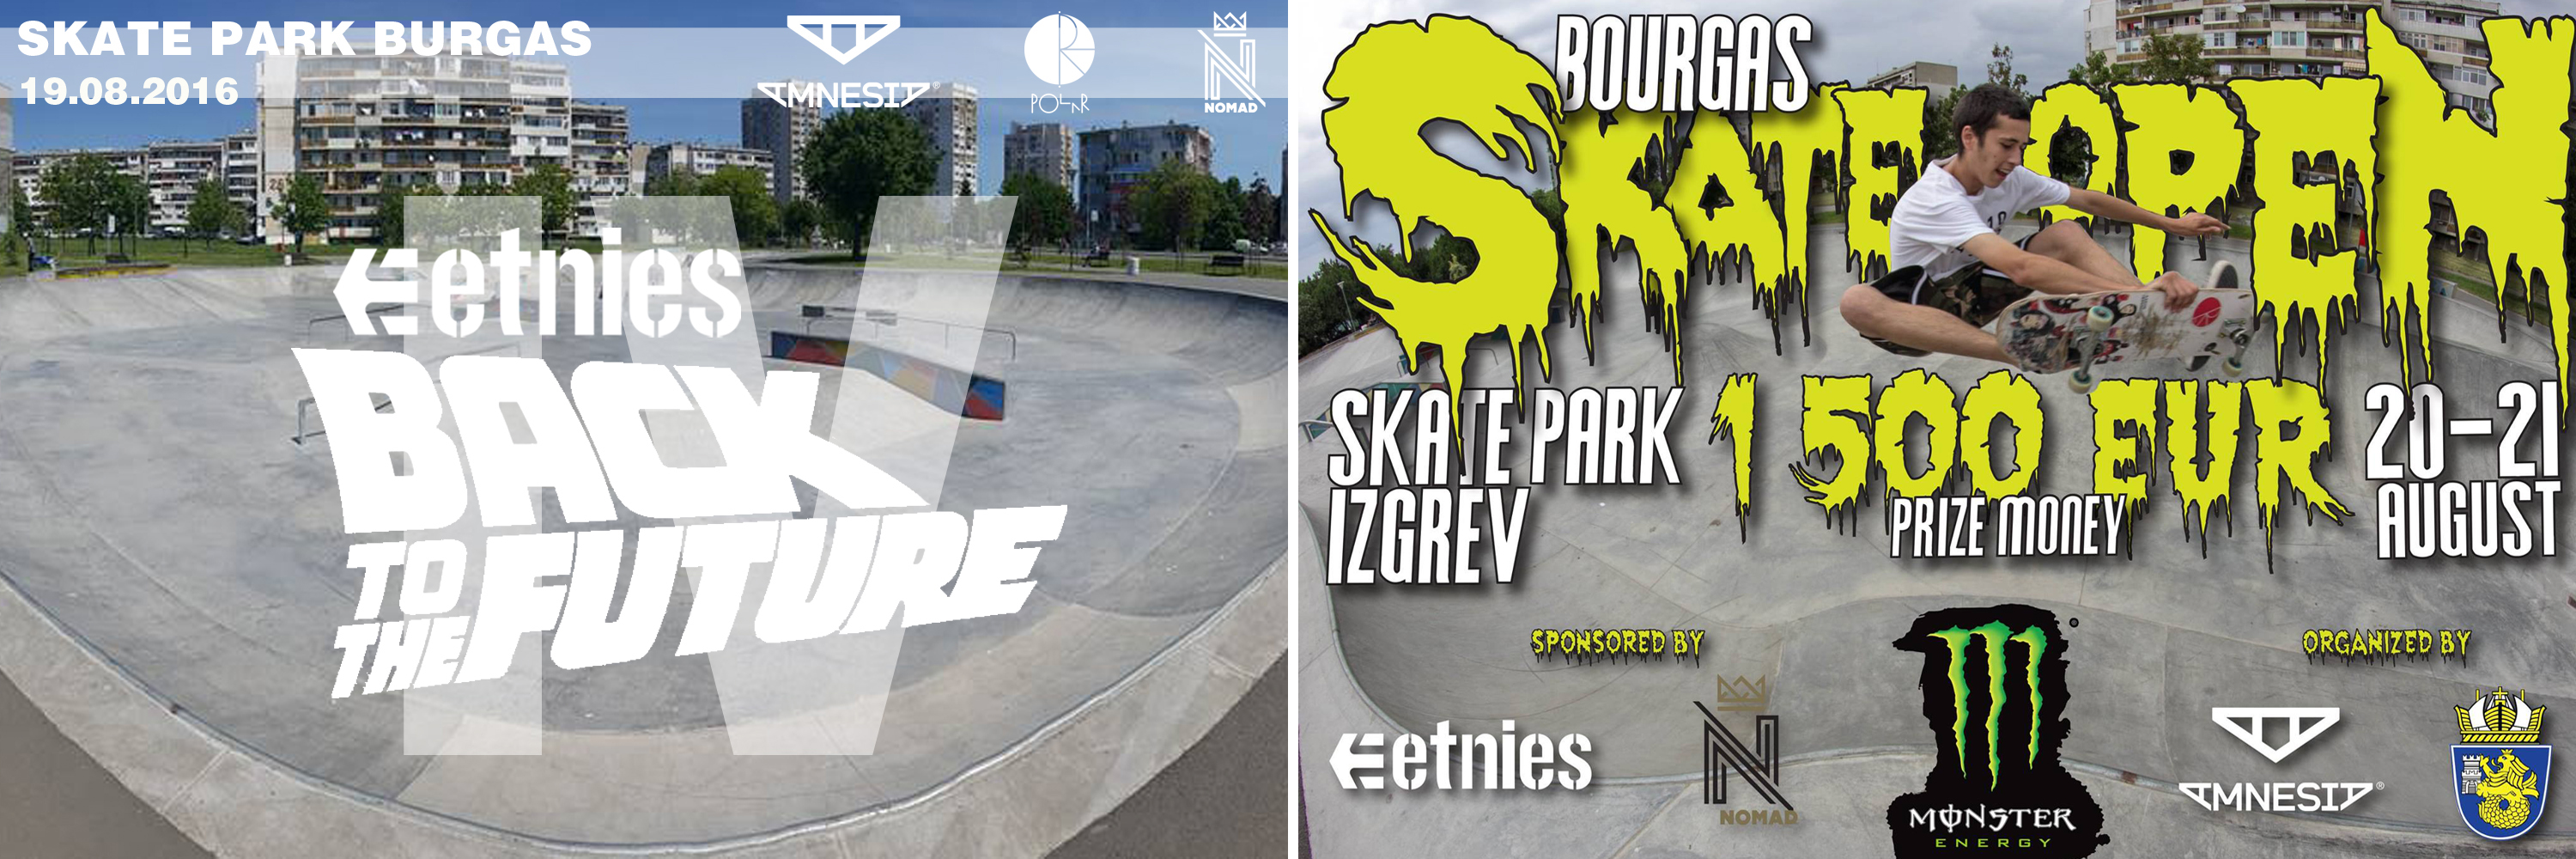 etnies Back to The Future & Bourgas Skate Open 2016